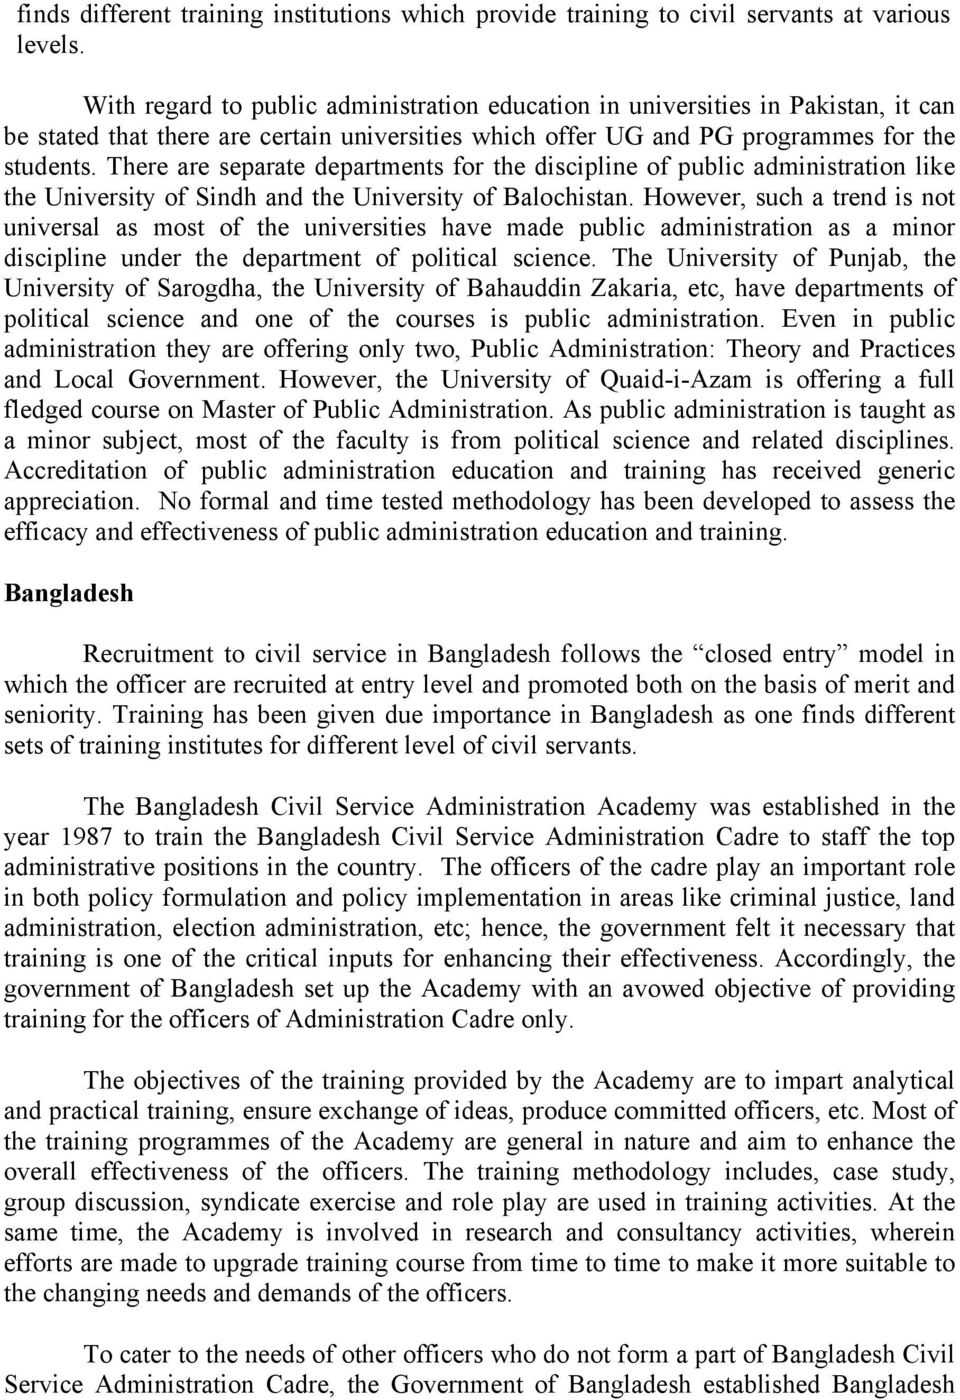 There are separate departments for the discipline of public administration like the University of Sindh and the University of Balochistan.